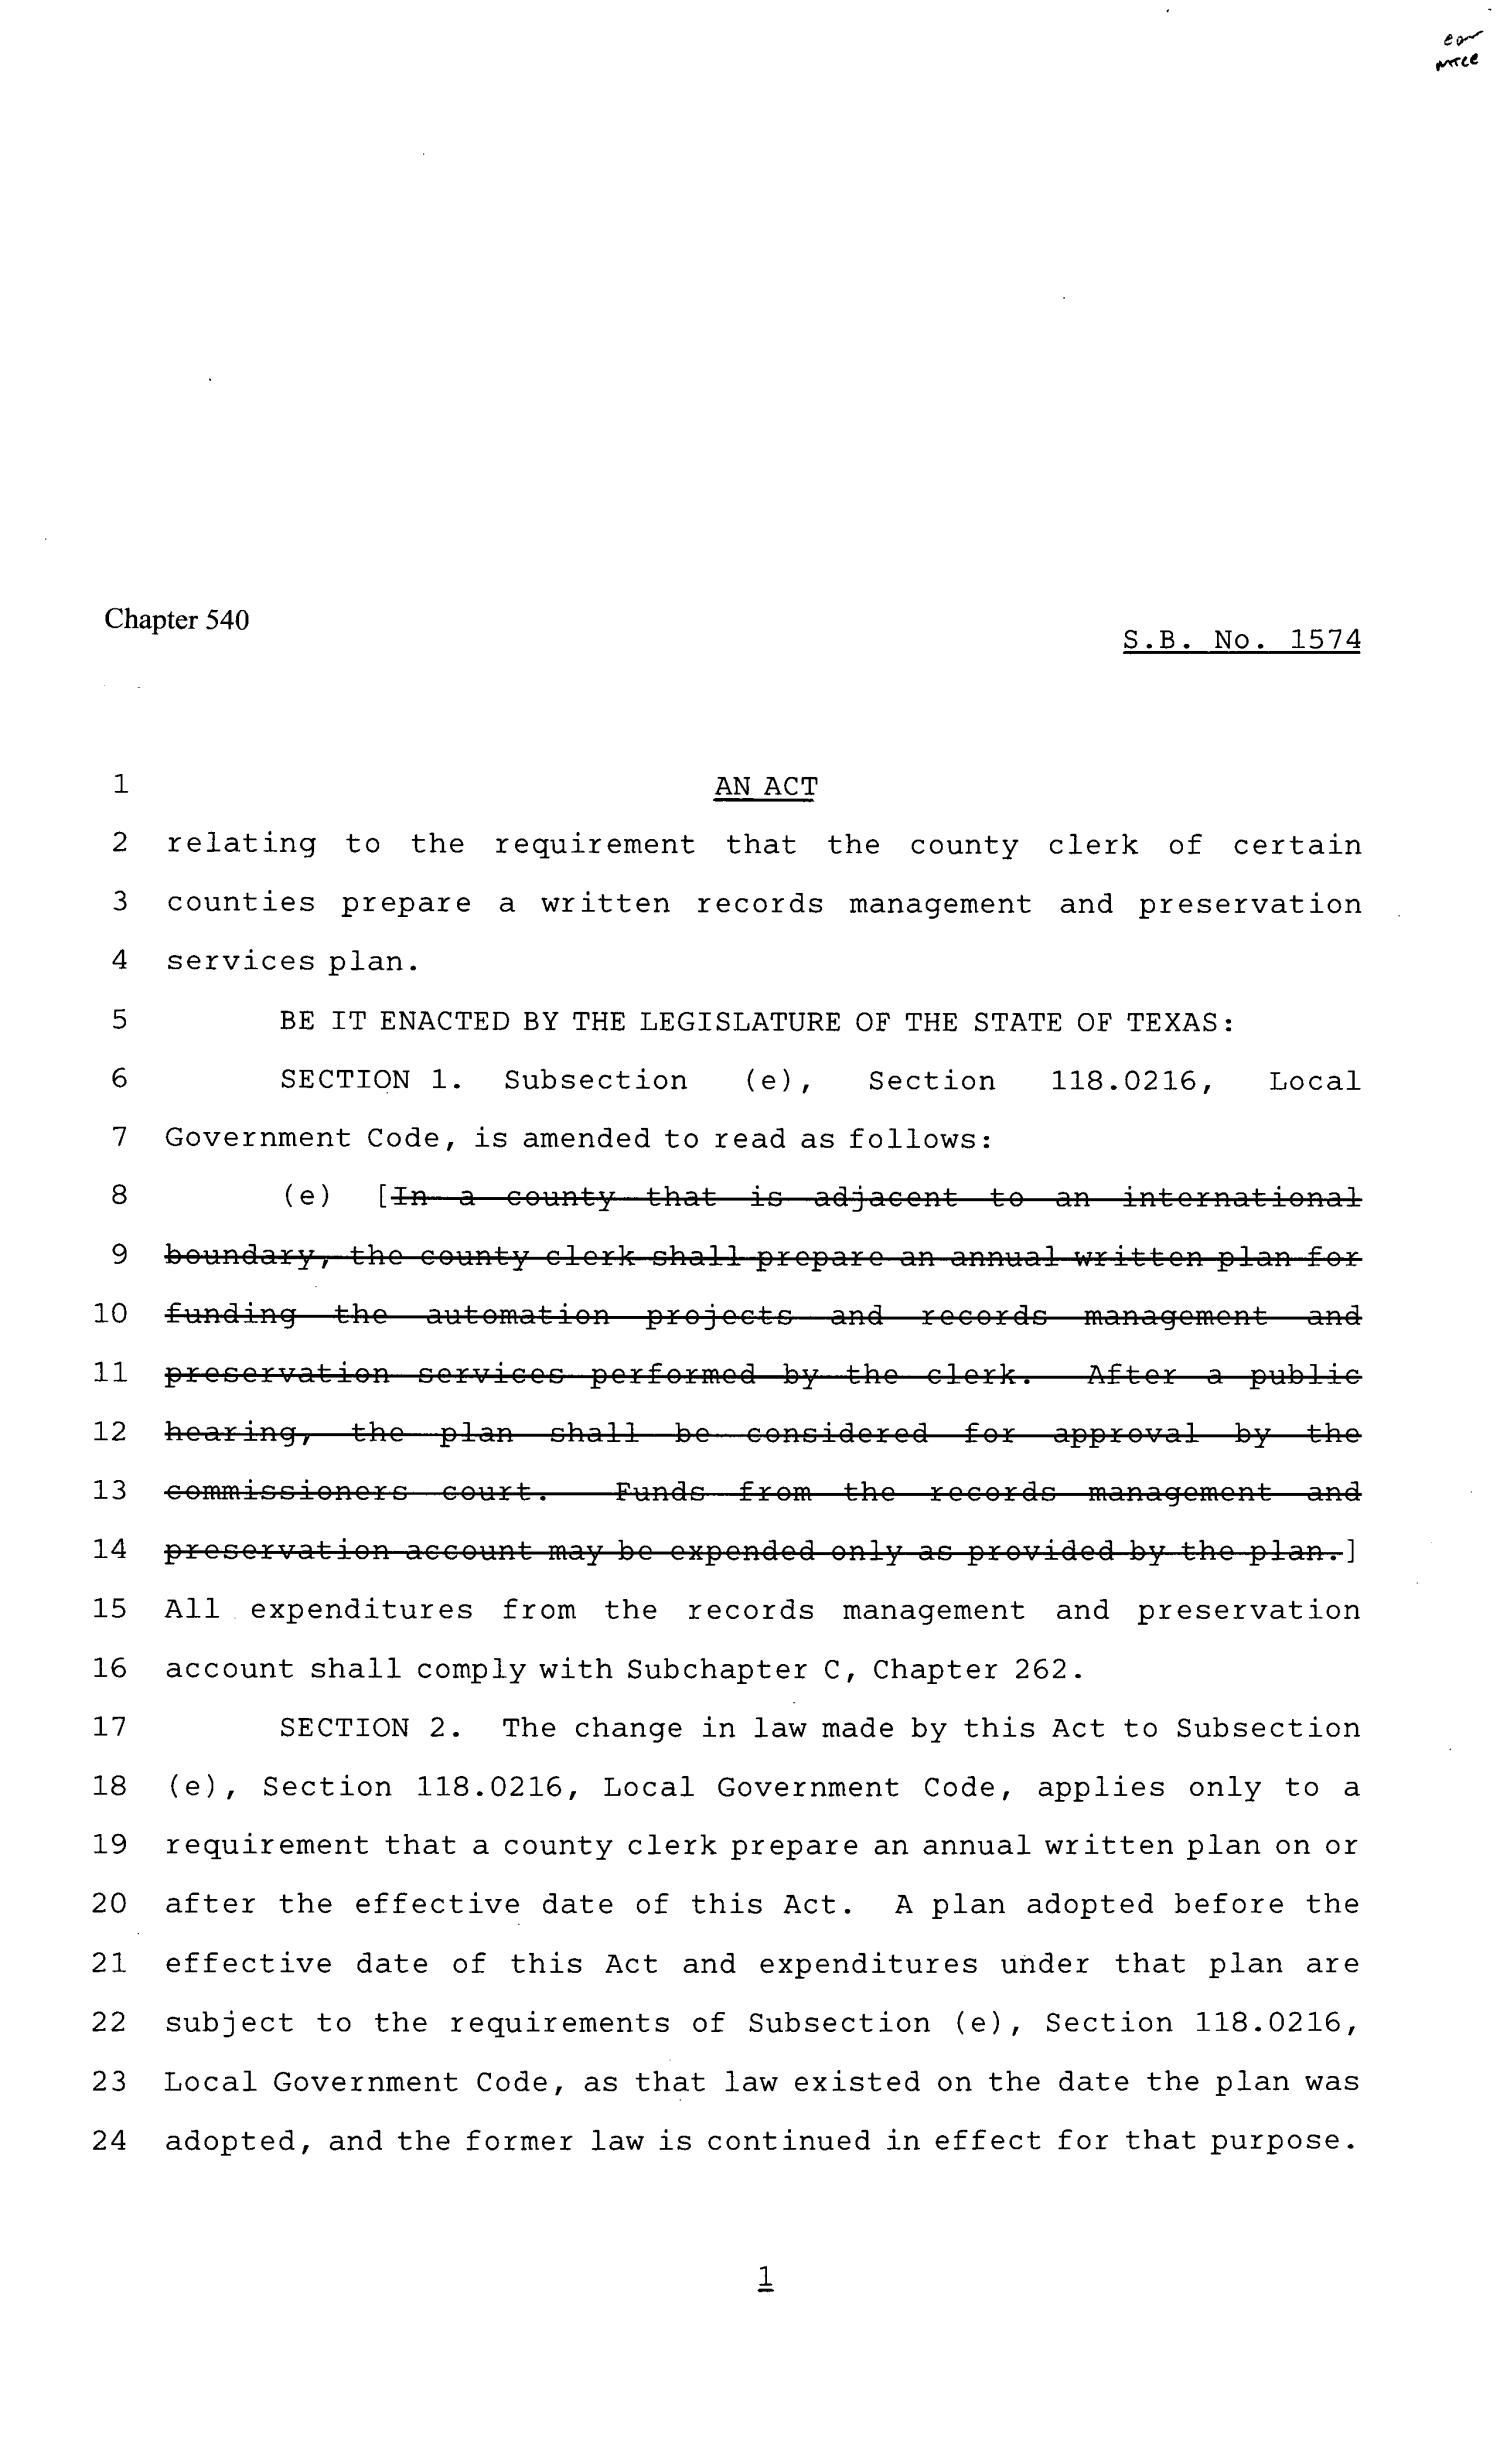 81st Texas Legislature, Senate Bill 1574, Chapter 540                                                                                                      [Sequence #]: 1 of 3